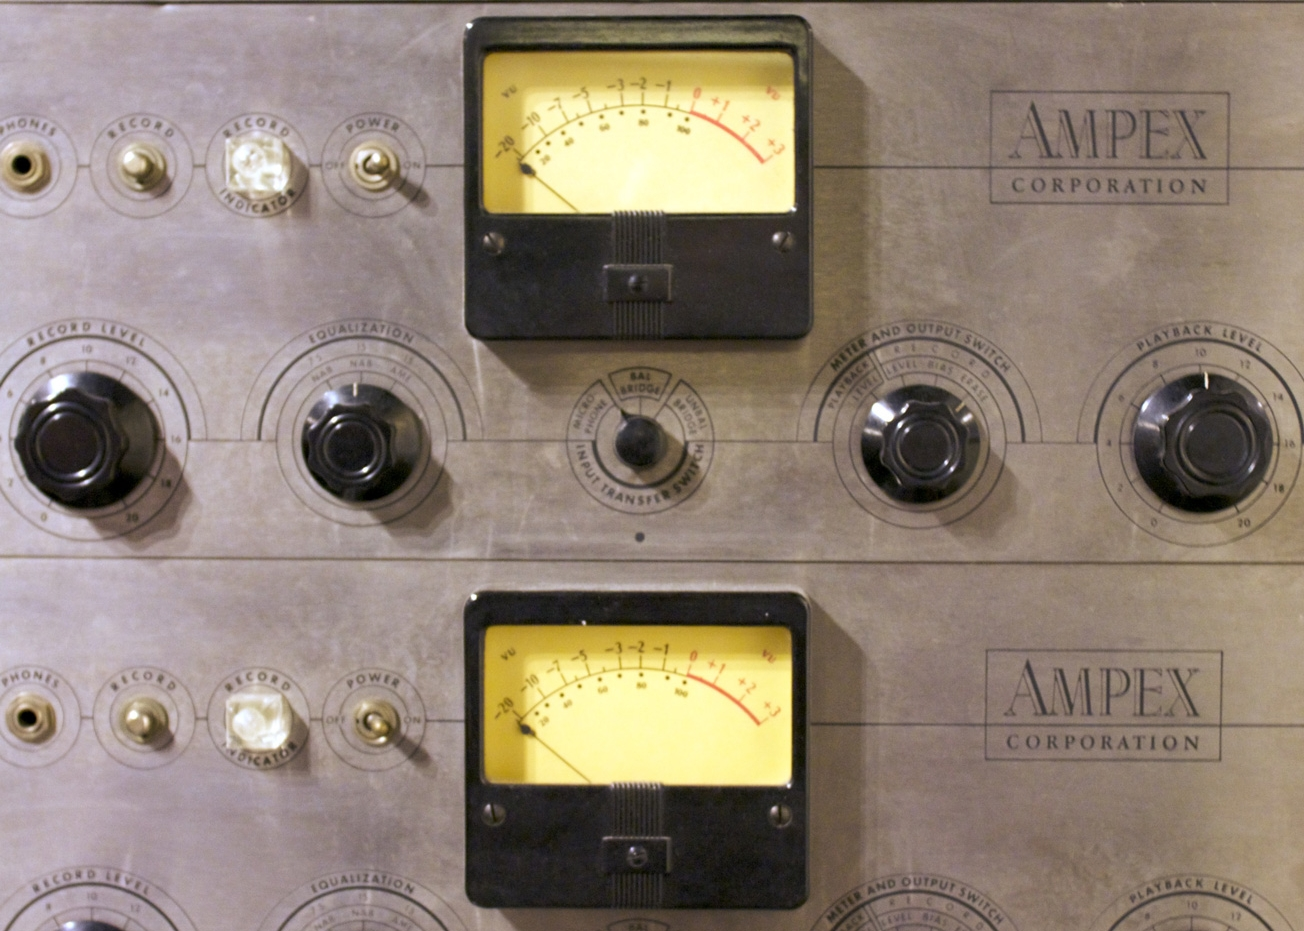 Boutique Preamplifiers - Learn how boutique preamplifiers can bring a rich, textured sound to your mixes.